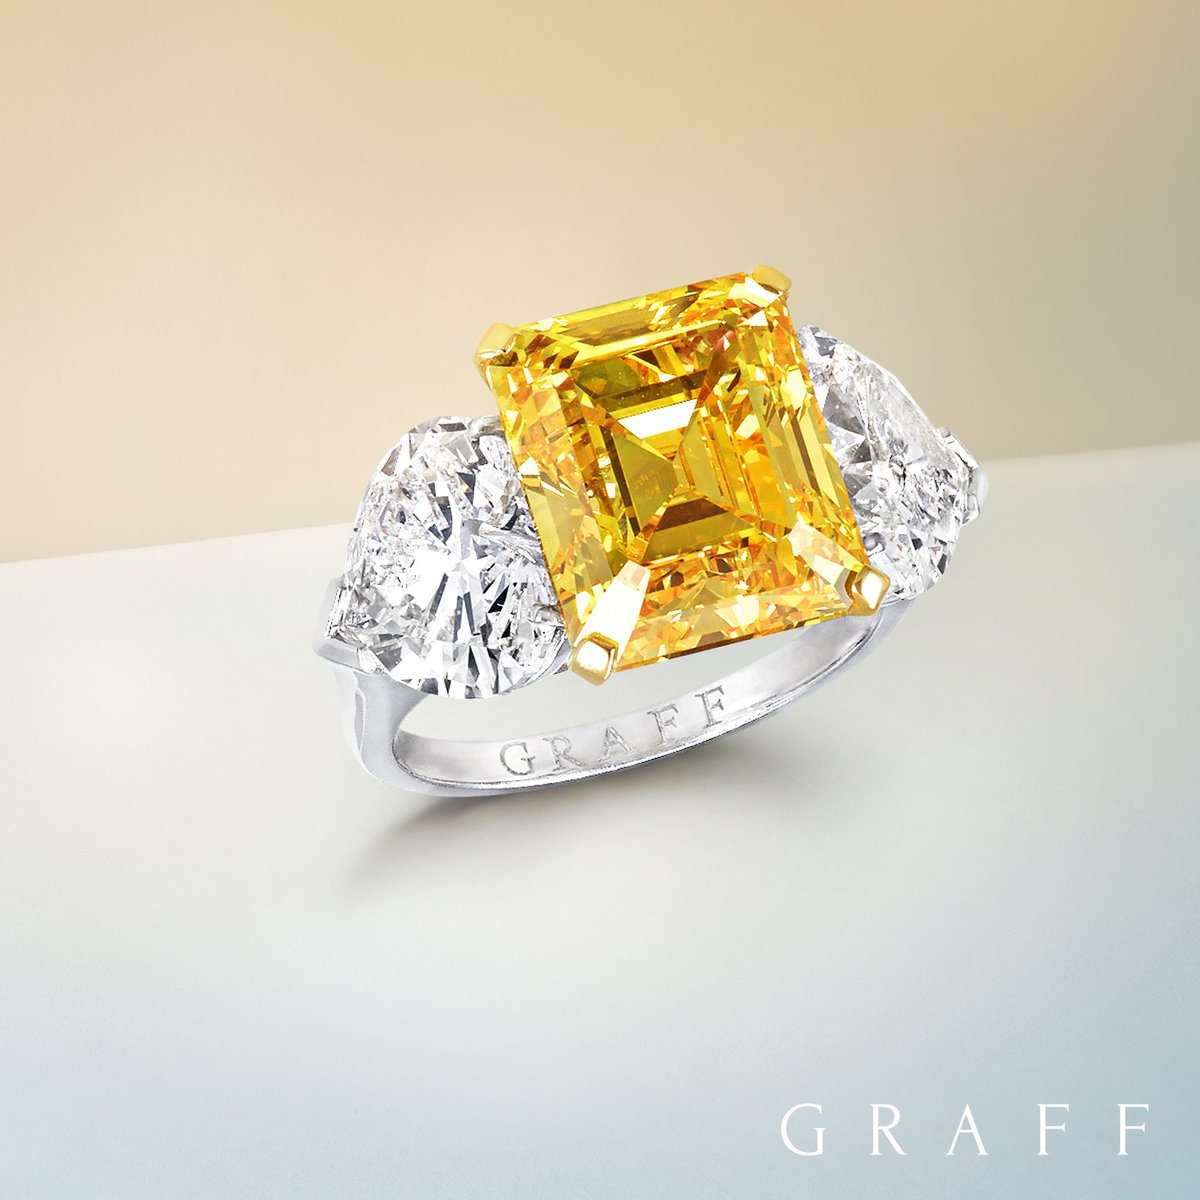 Shades of Summer. Bask in the beauty of the finest yellow diamonds: https://t.co/u1KIburxAc https://t.co/8MG4gAZ9h1